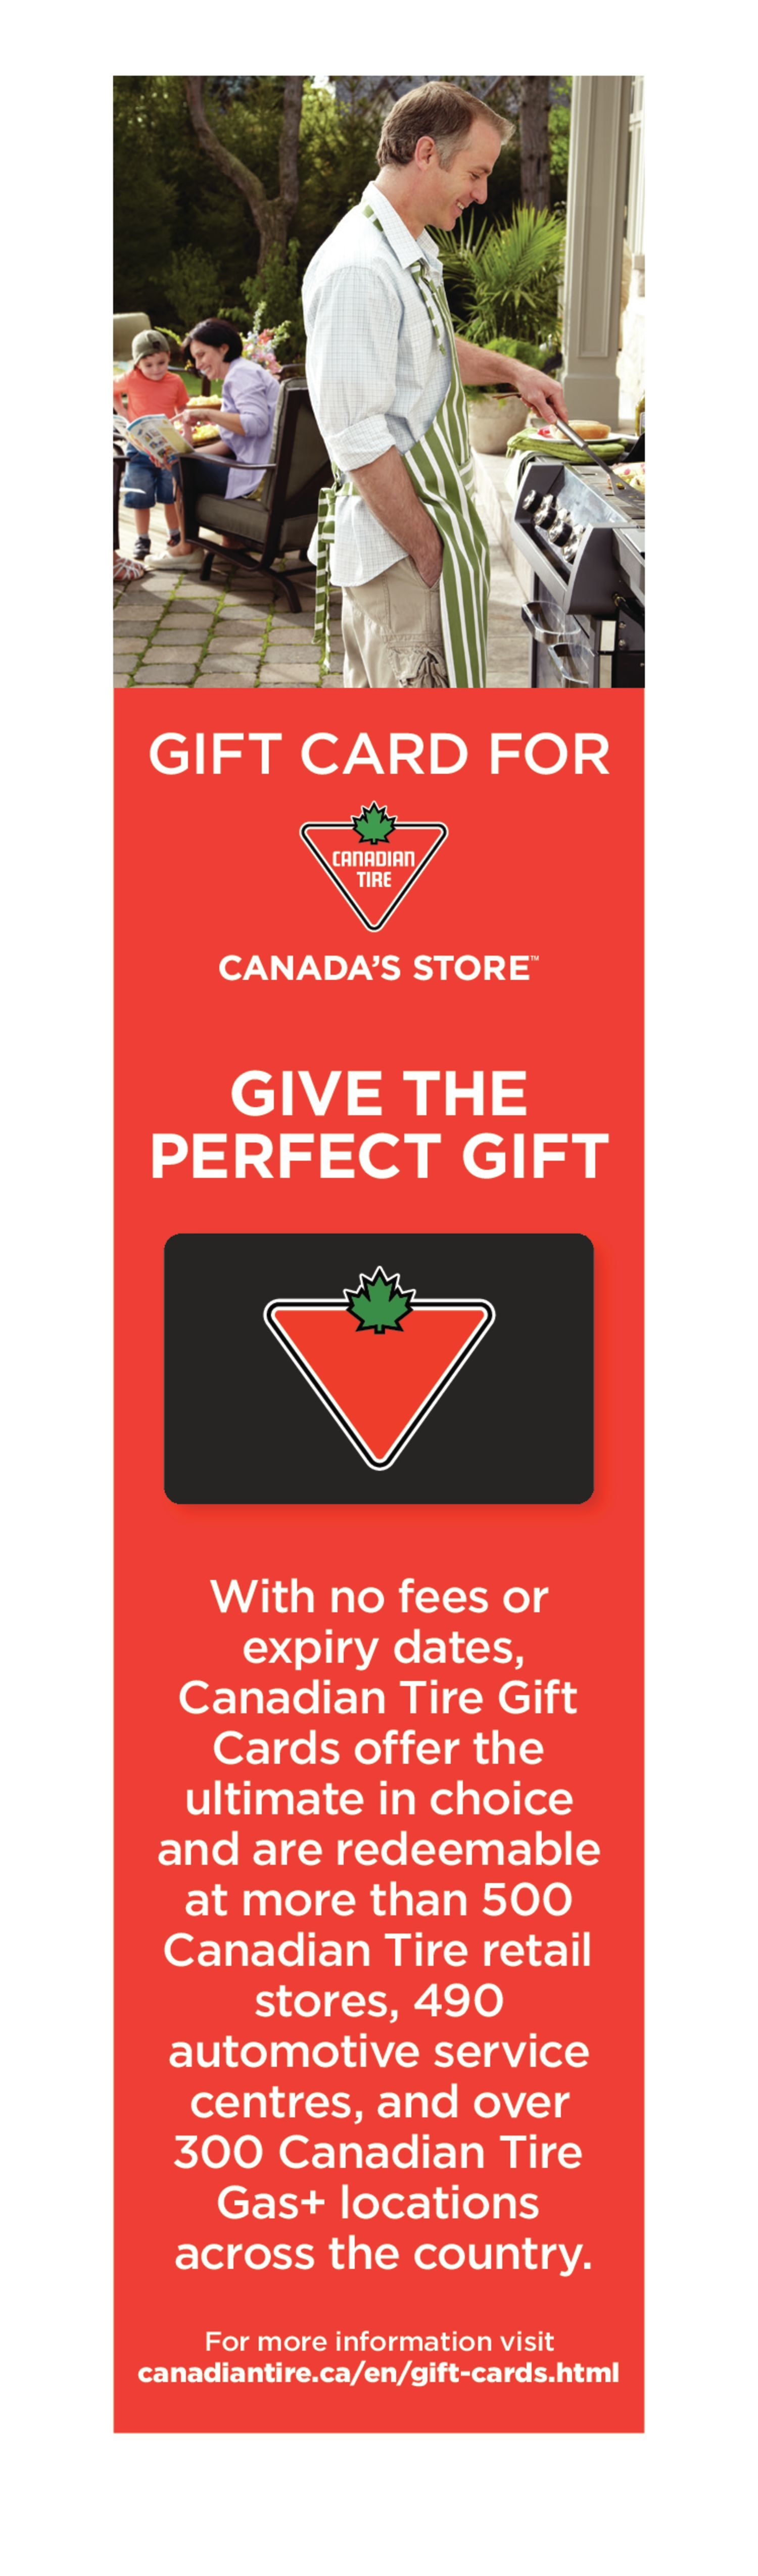 Canadian Tire Weekly Flyer Weekly Canada S Store Nov 6 12 Redflagdeals Com